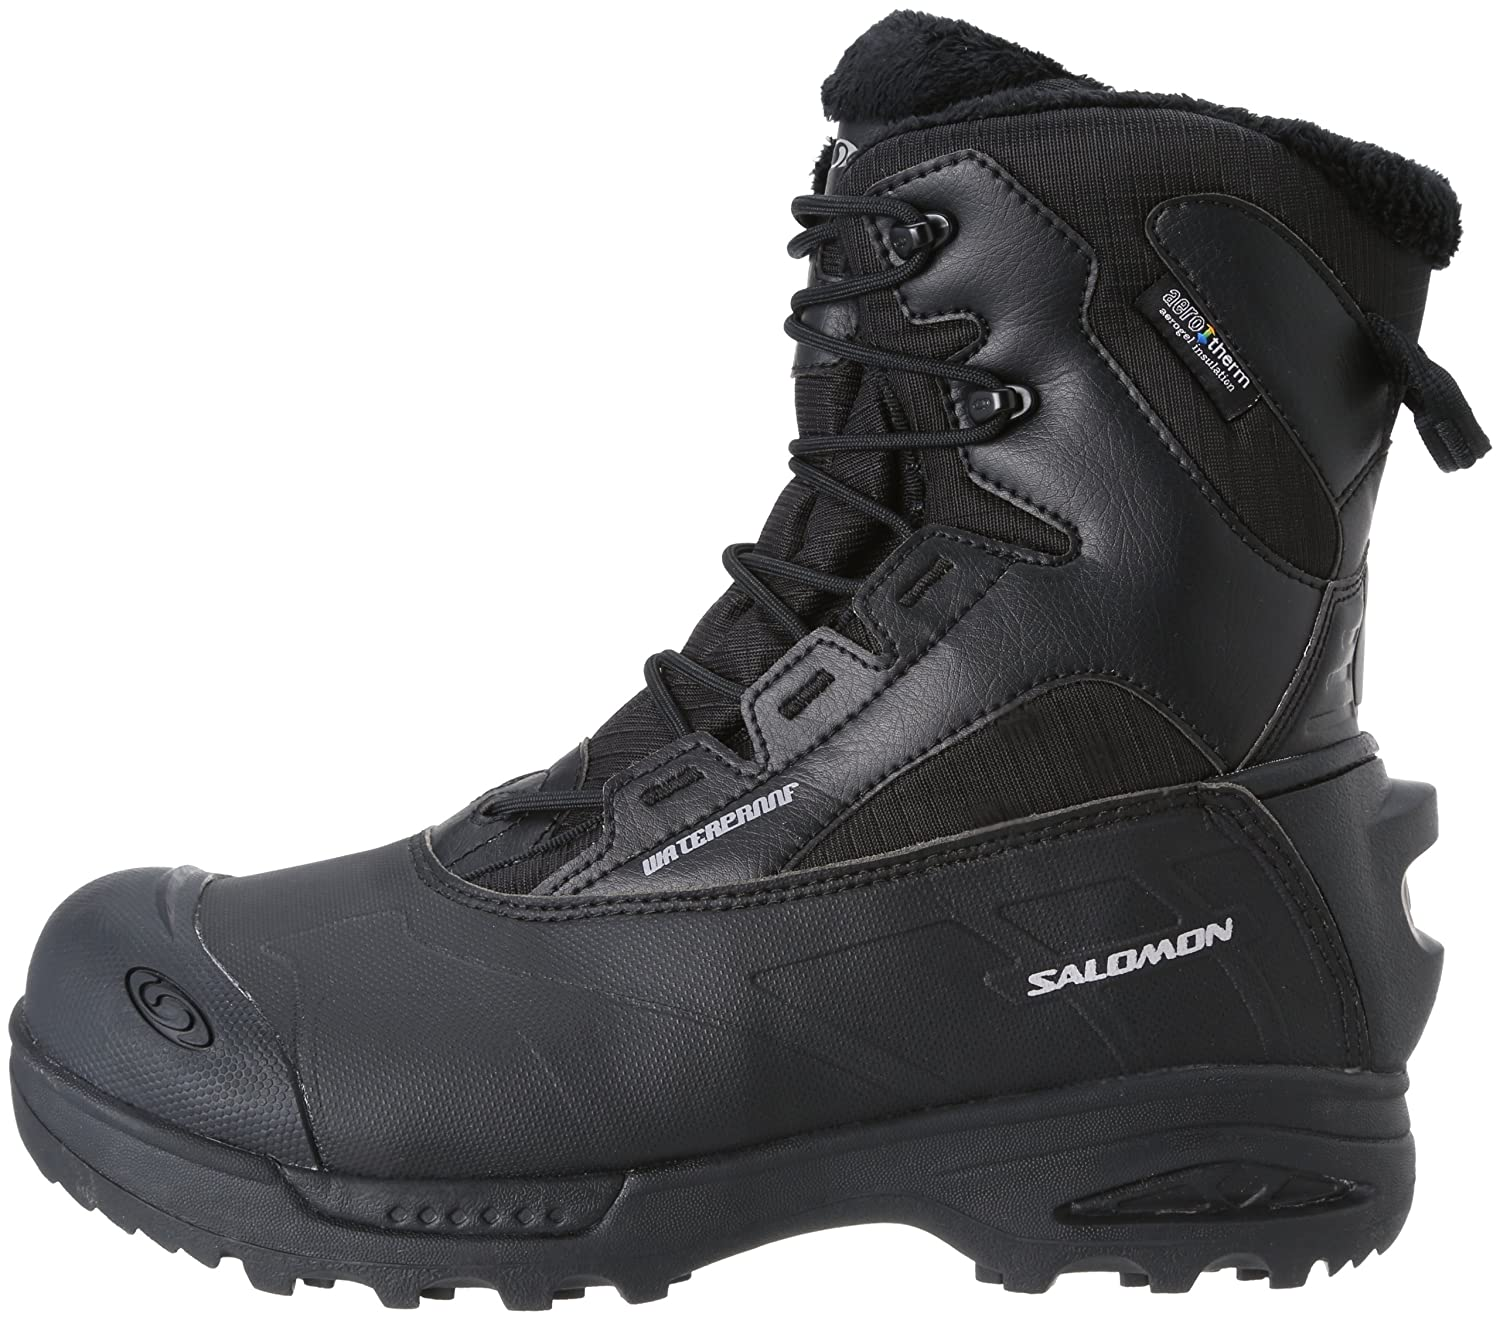 Details about Salomon Toundra Mid WP Black Lace Up Insulated Waterproof Snow Boots 10